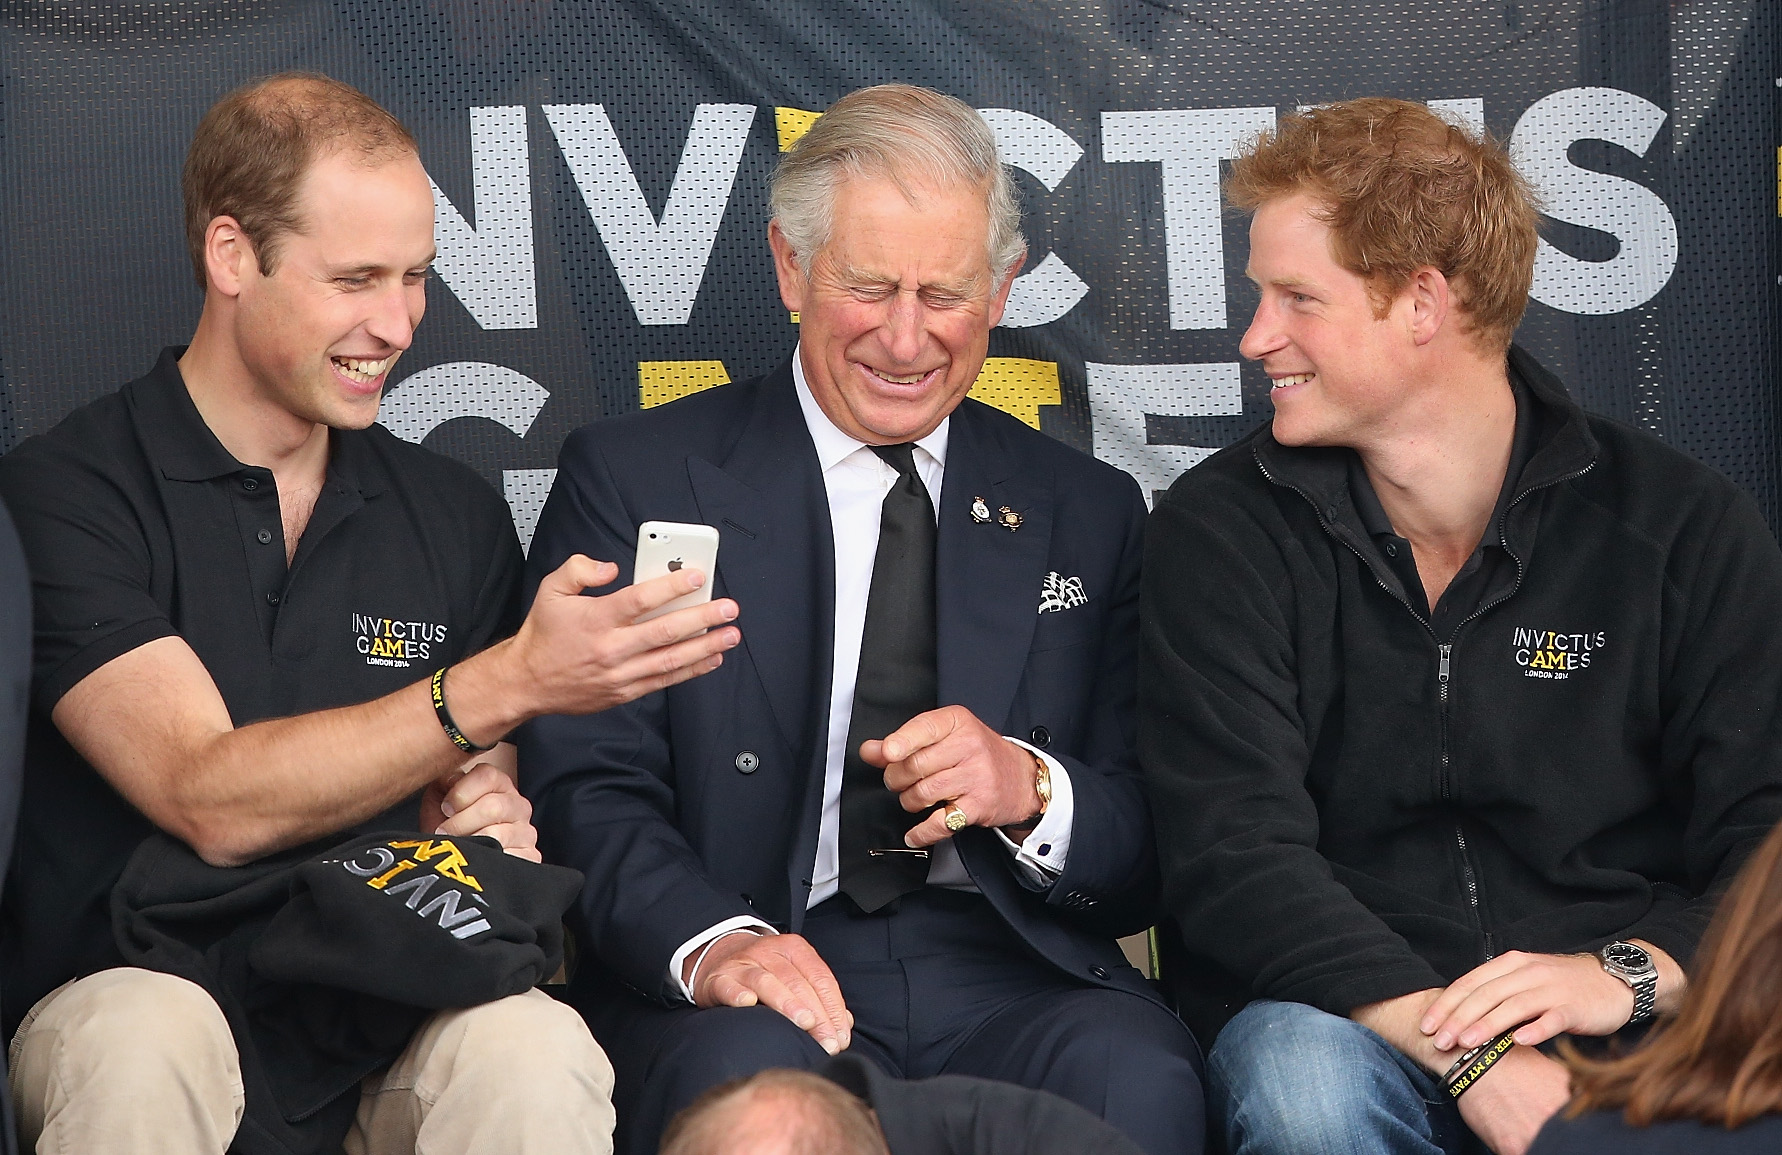 Prince Charles Prince William Prince Harry Getty Images